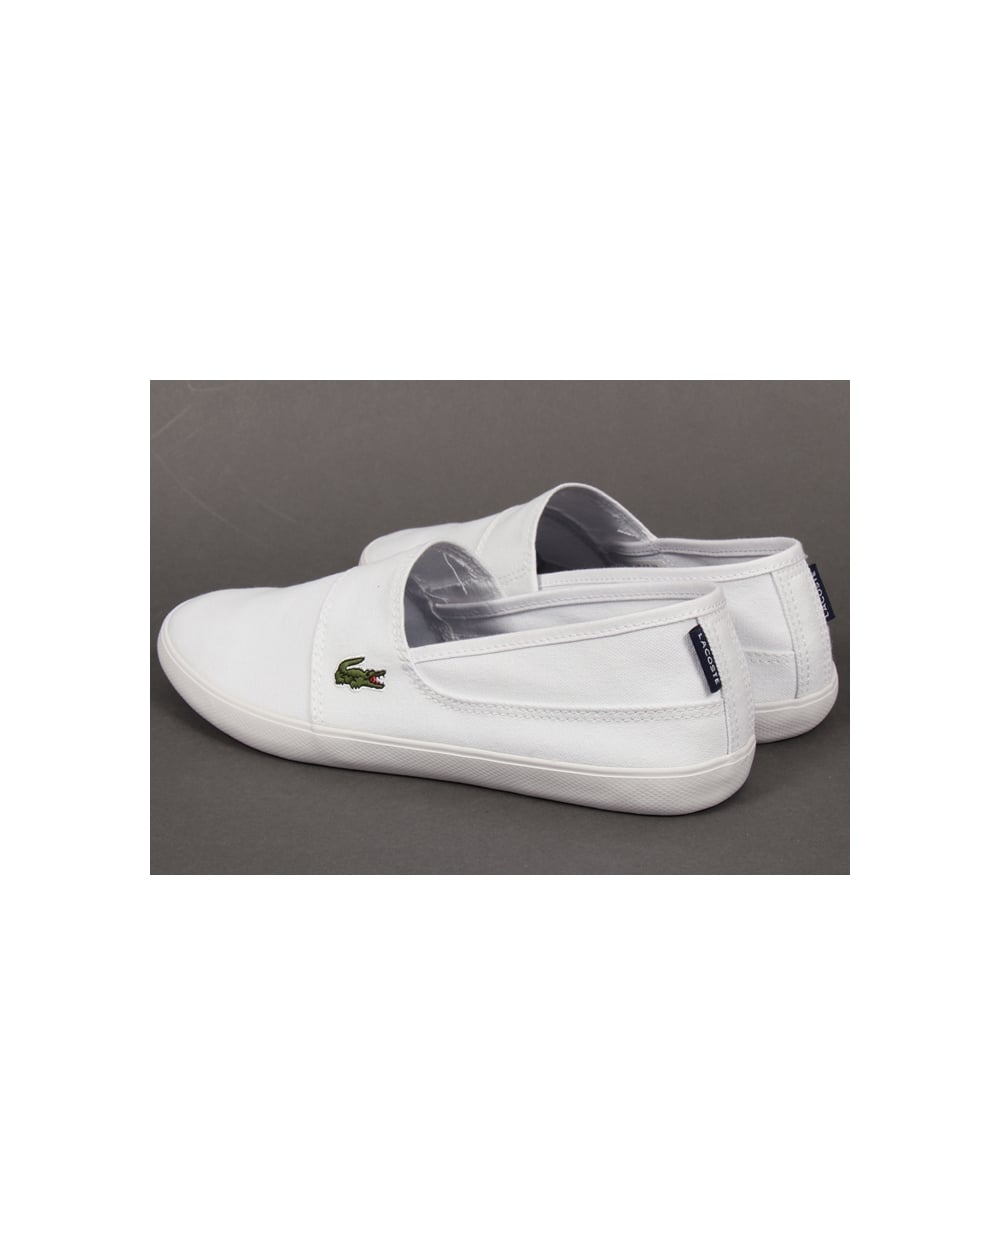 42dc67cad Lacoste Marice Slip On Espadrille style- White